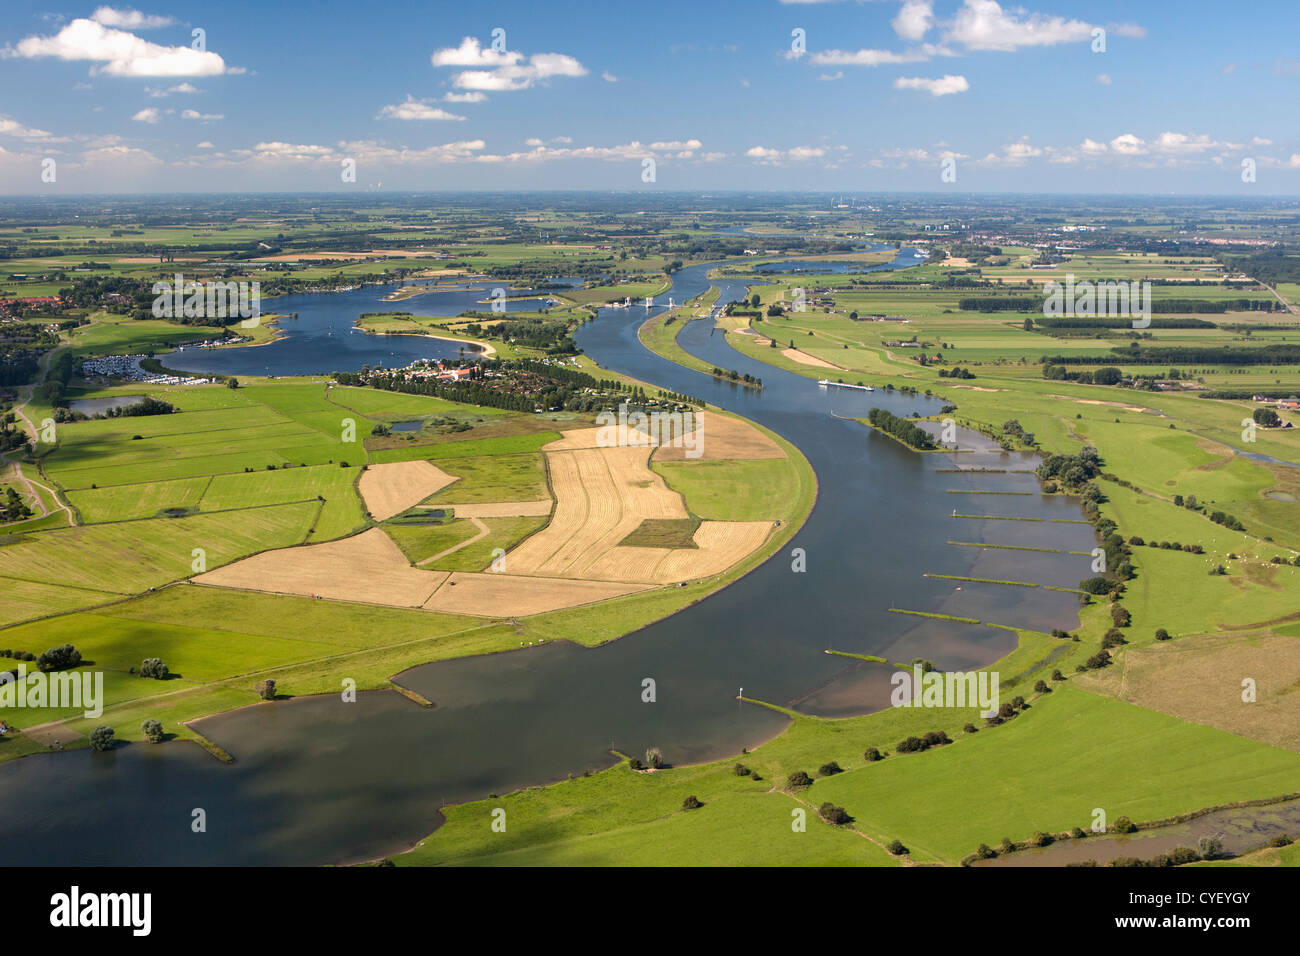 The Netherlands, Maurik, Rhine river. Aerial. - Stock Image